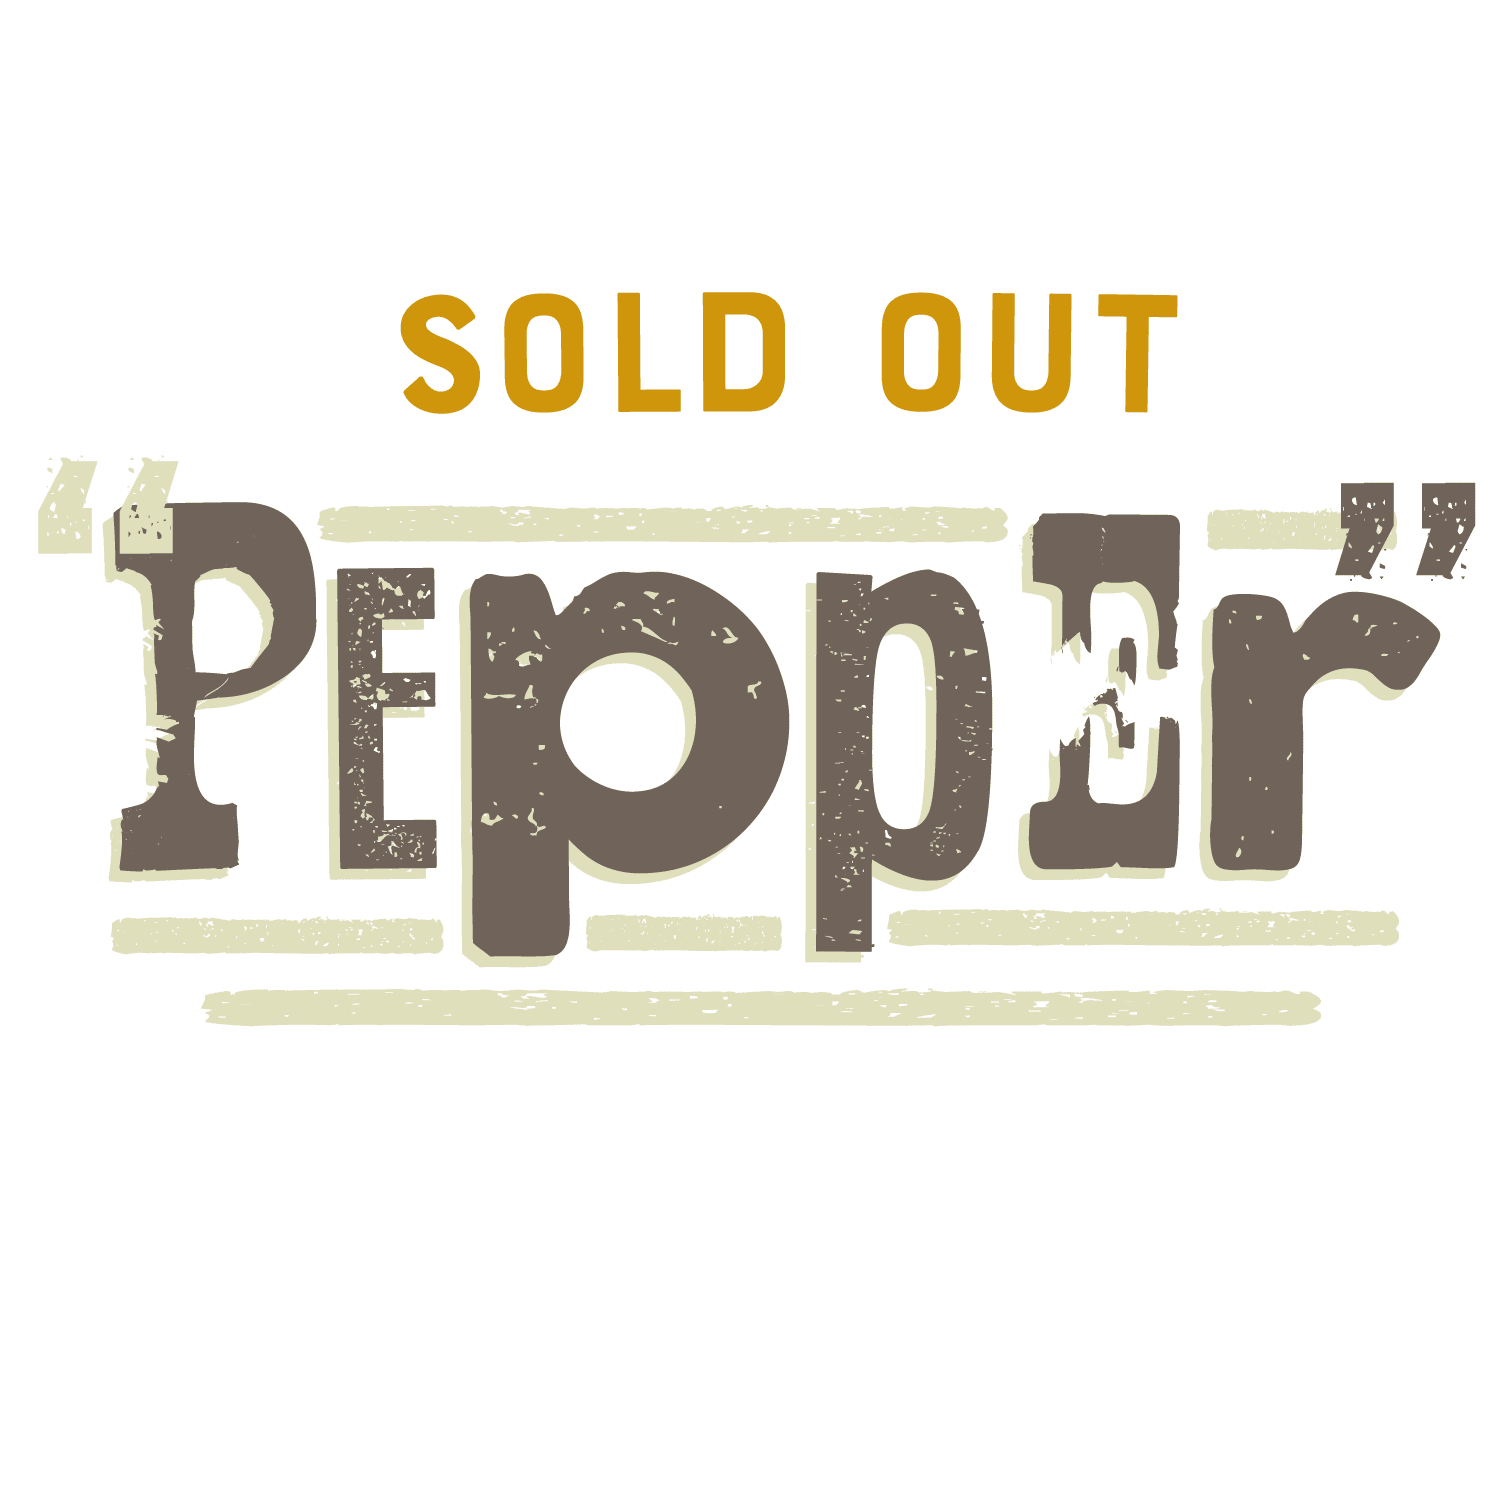 sold-out-Pepper-1